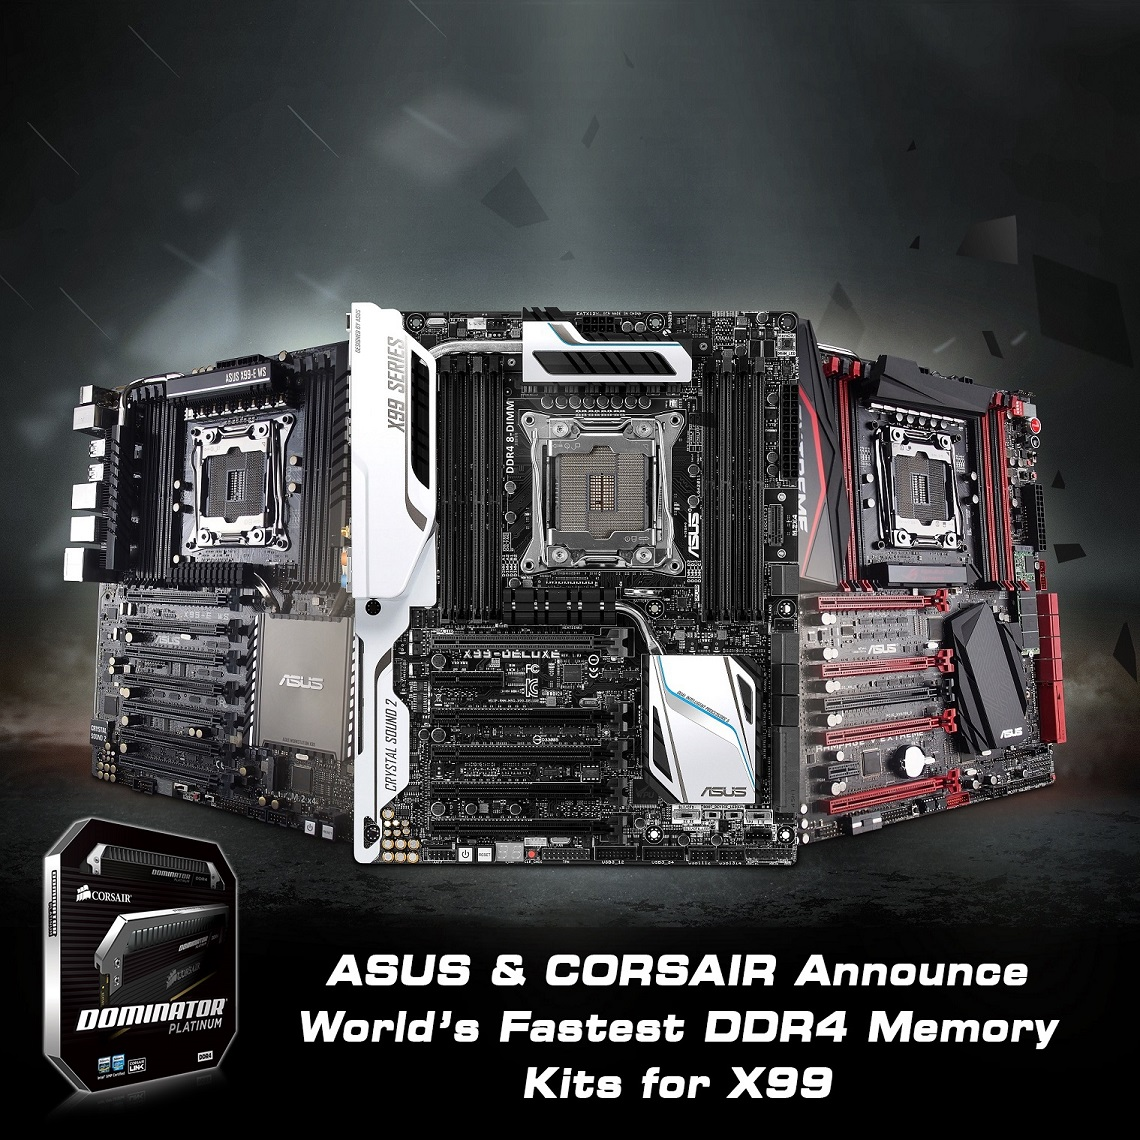 ASUS & CORSAIR Announce World's Fastest DDR4 Memory Kit for X99